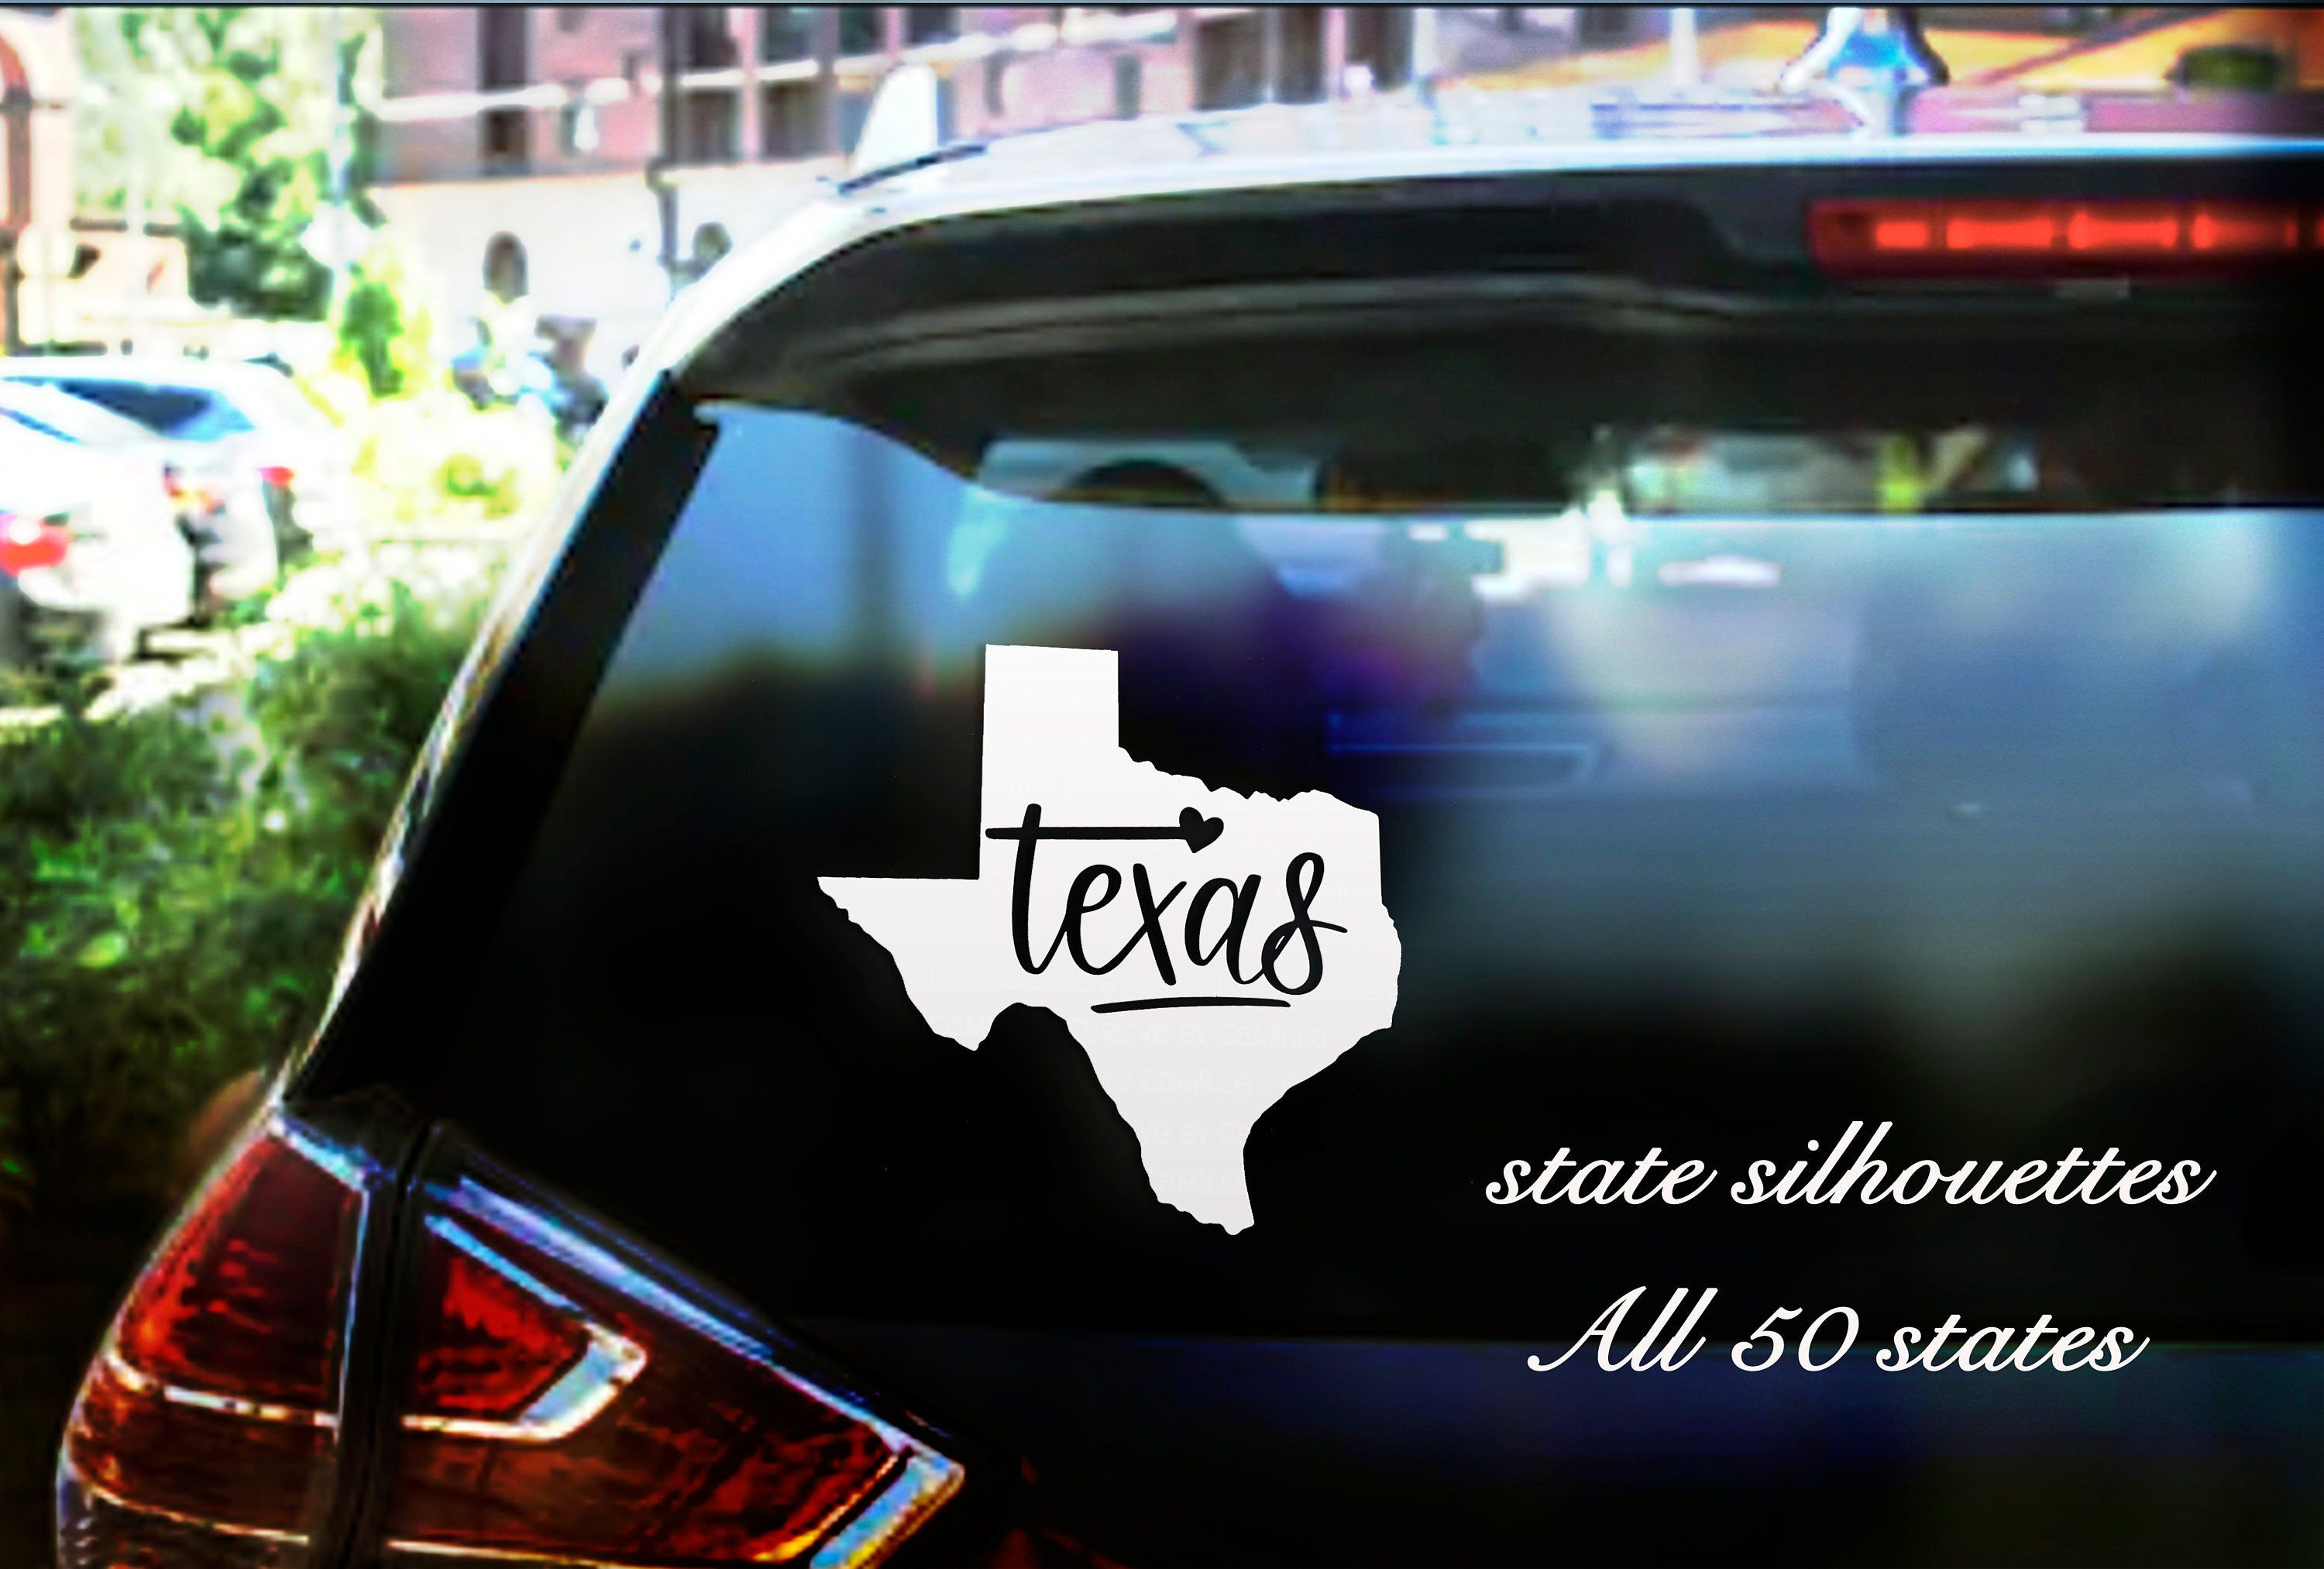 State Car Window Decal Any Of The 50 States Customized Back Car Decal Personalized Sticker Create Your Own Personalized Stickers Car Window Decals Car Decals [ 2025 x 3000 Pixel ]